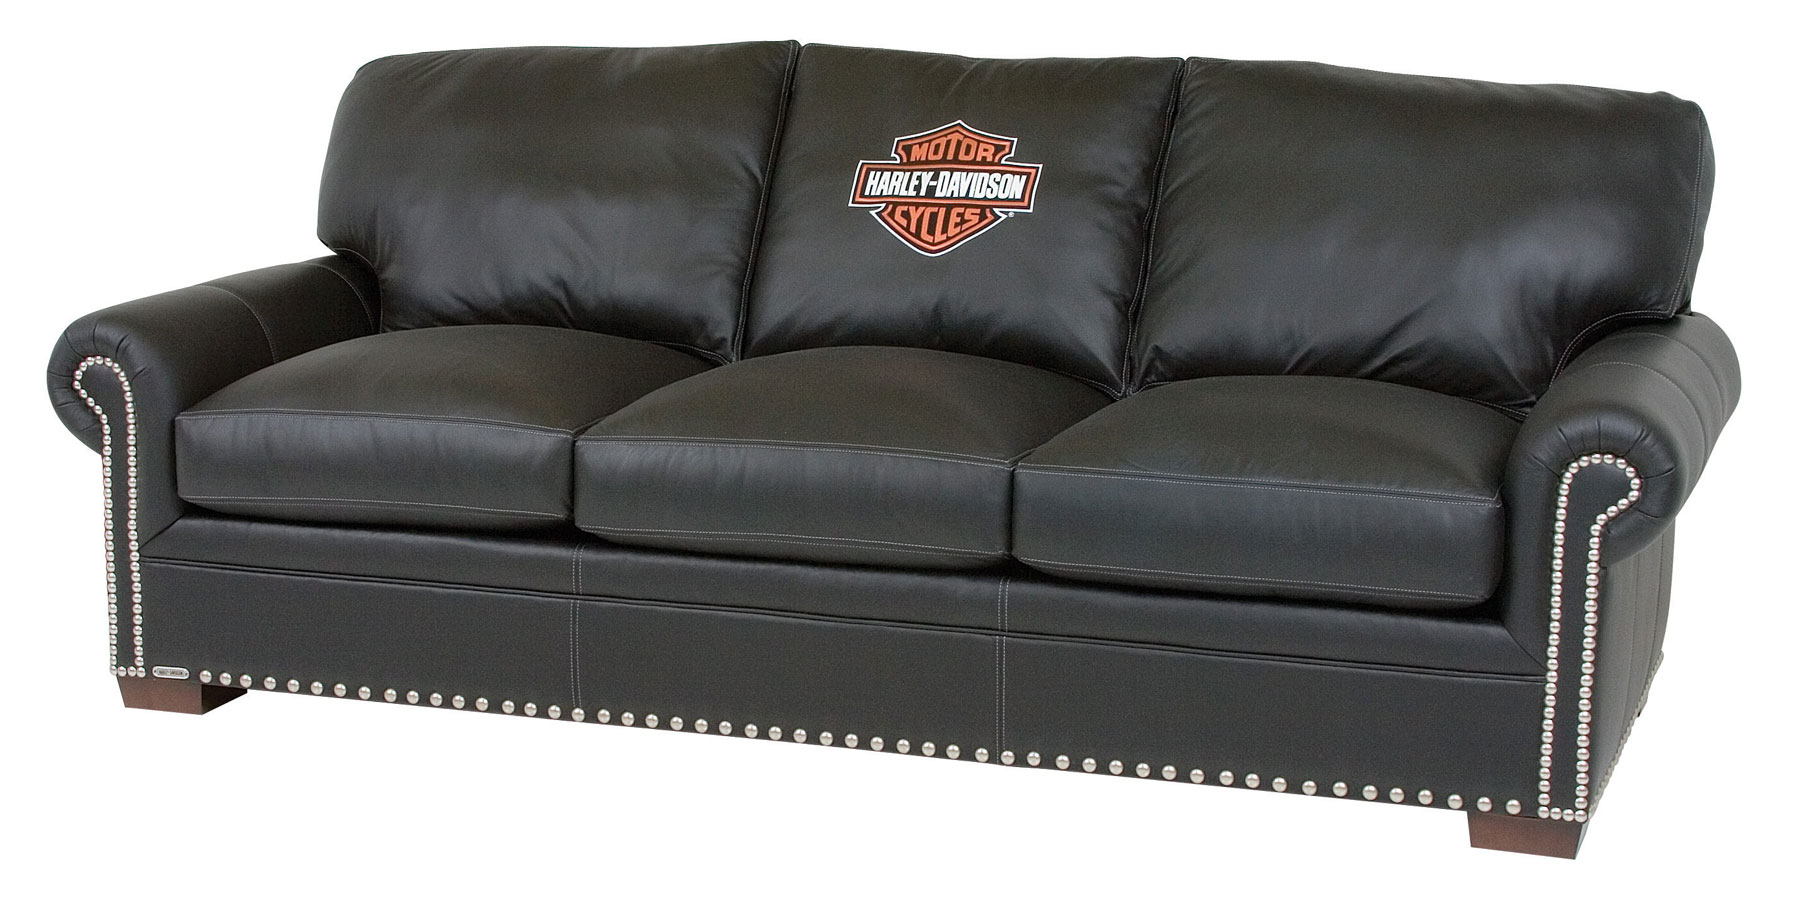 Harley Davidson Officially Licensed Black Leather